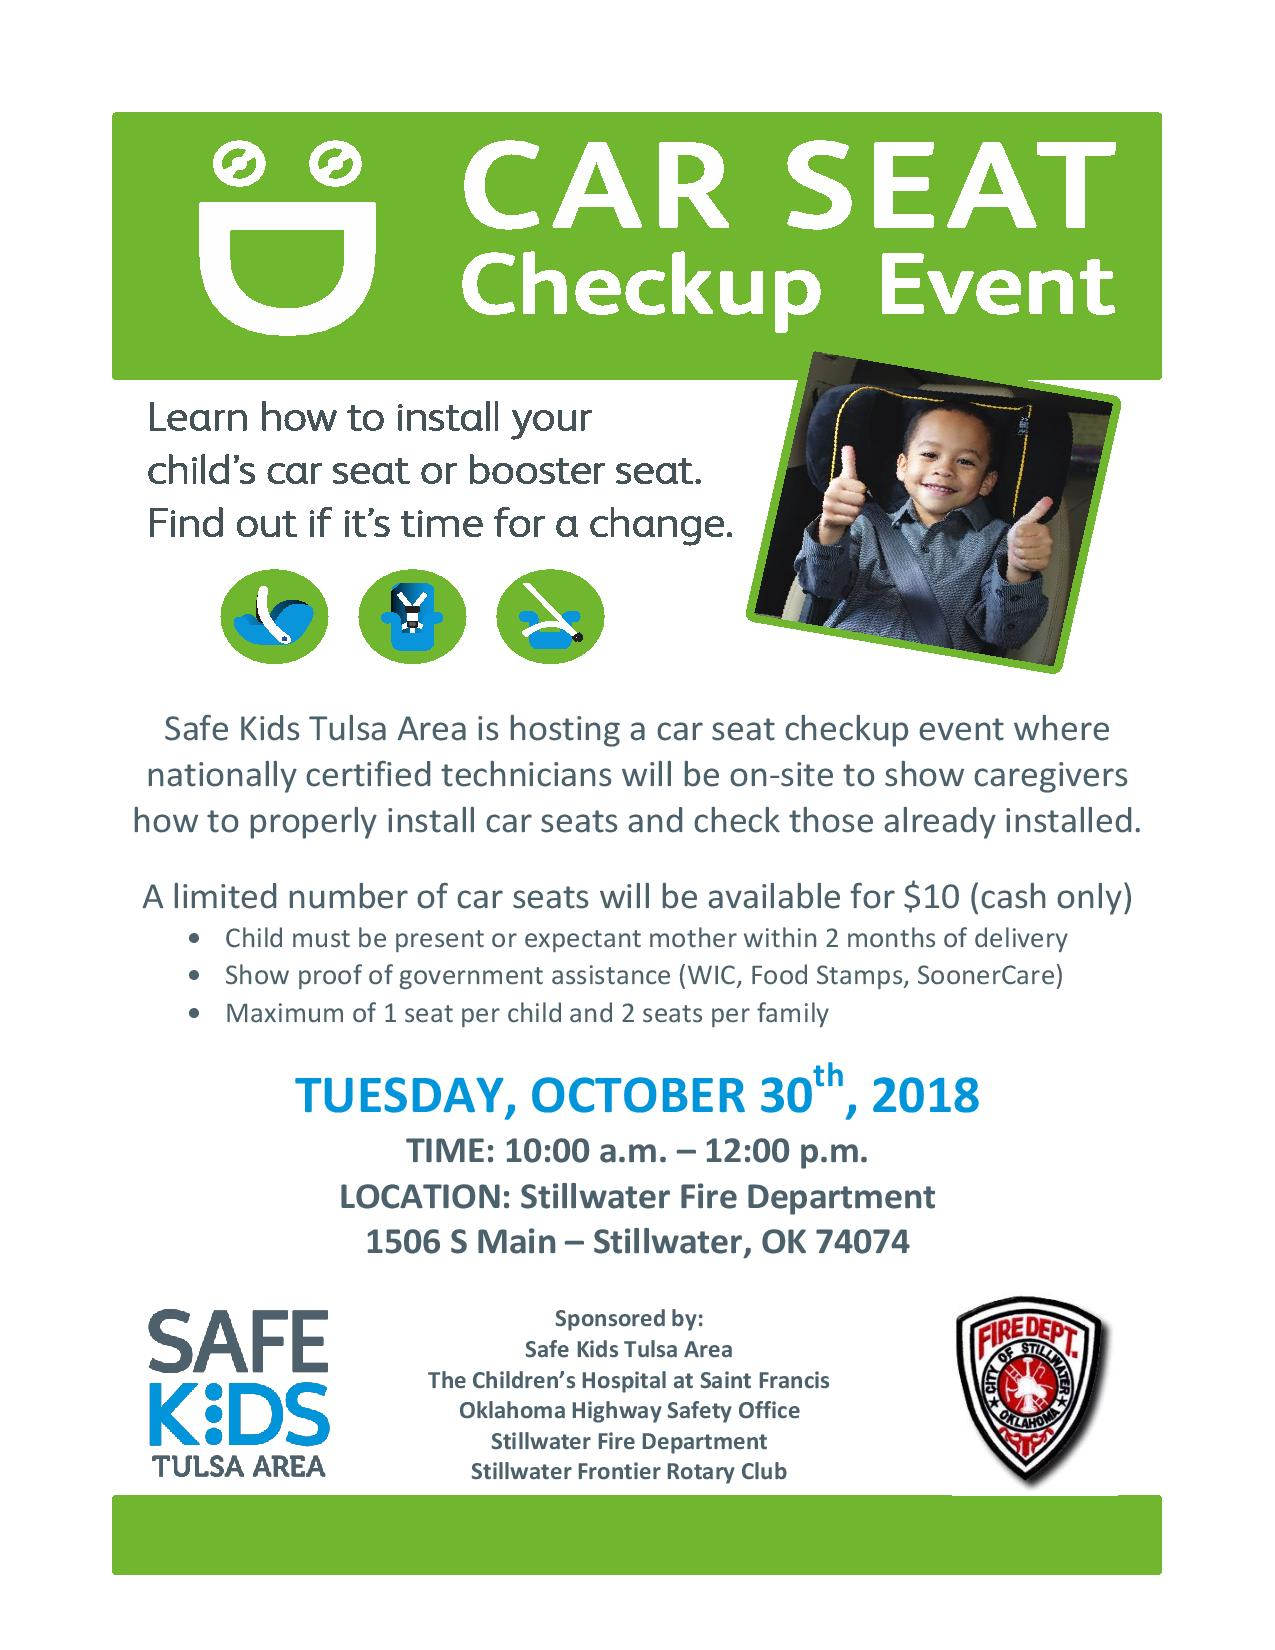 STILLWATER OKLAHOMA Oct 15 2018 The Stillwater Fire Department Is Conducting Free Car Seat Inspections On Tuesday 30 From 10 Am To 12 Pm